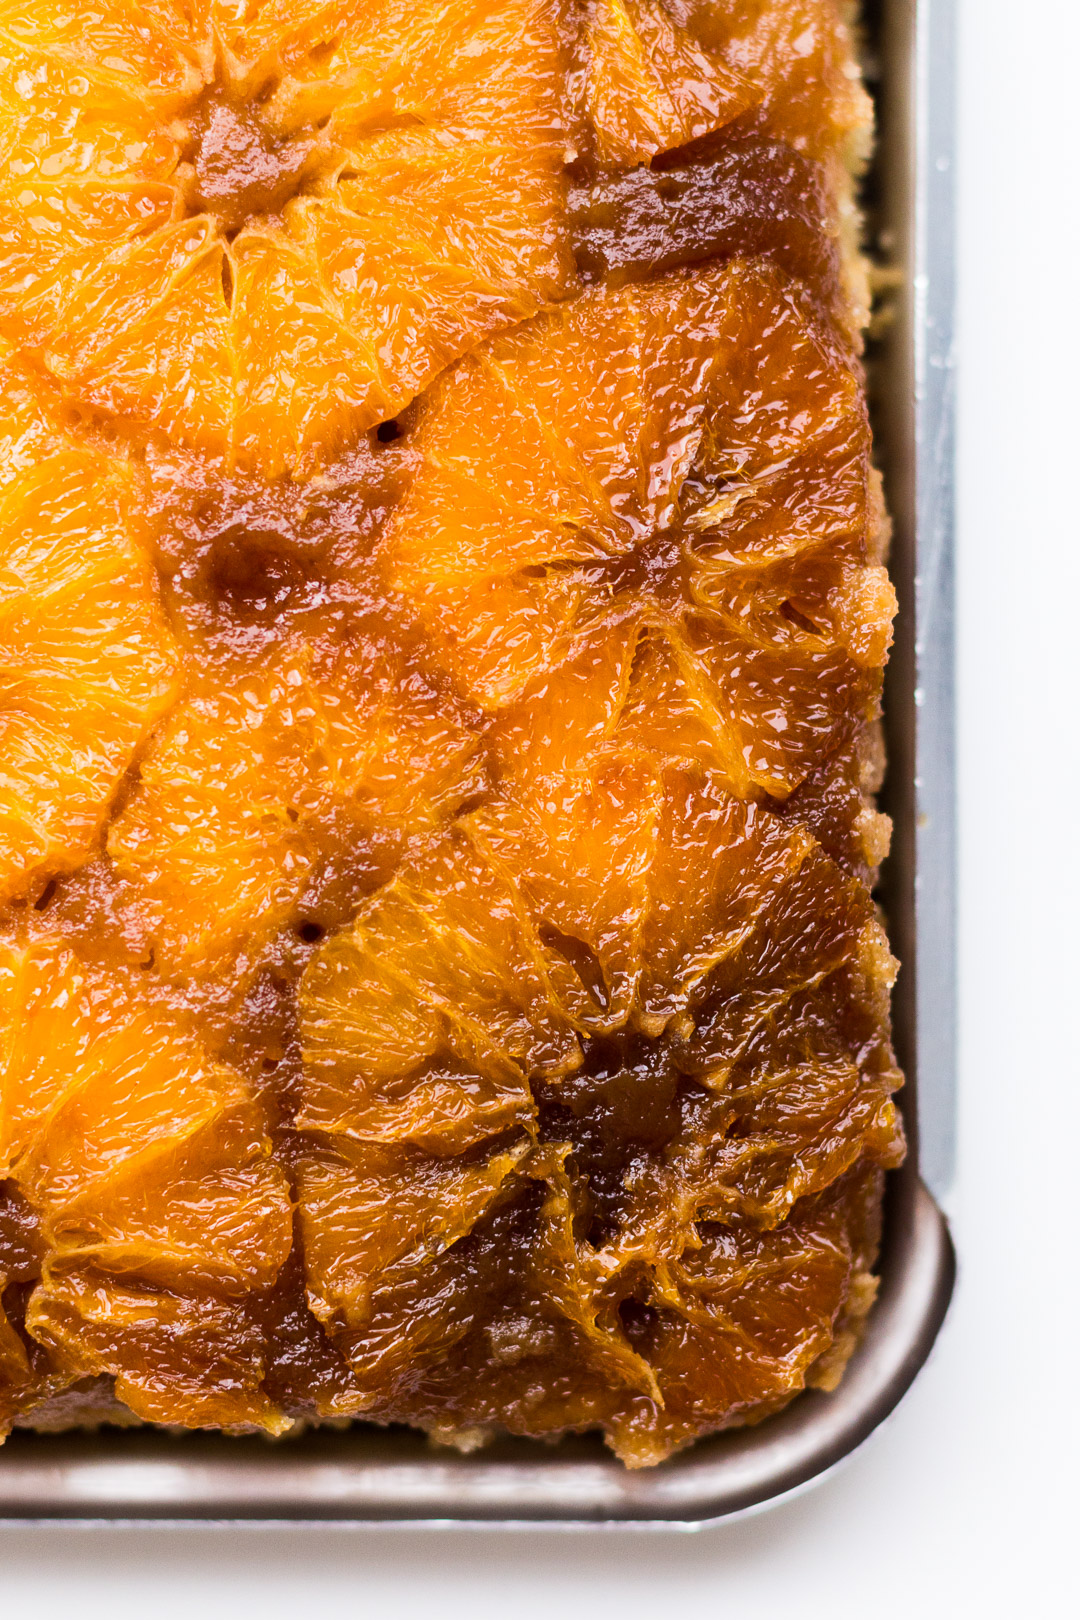 Close up overhead shot of the unglazed oranges on the upside down cake.